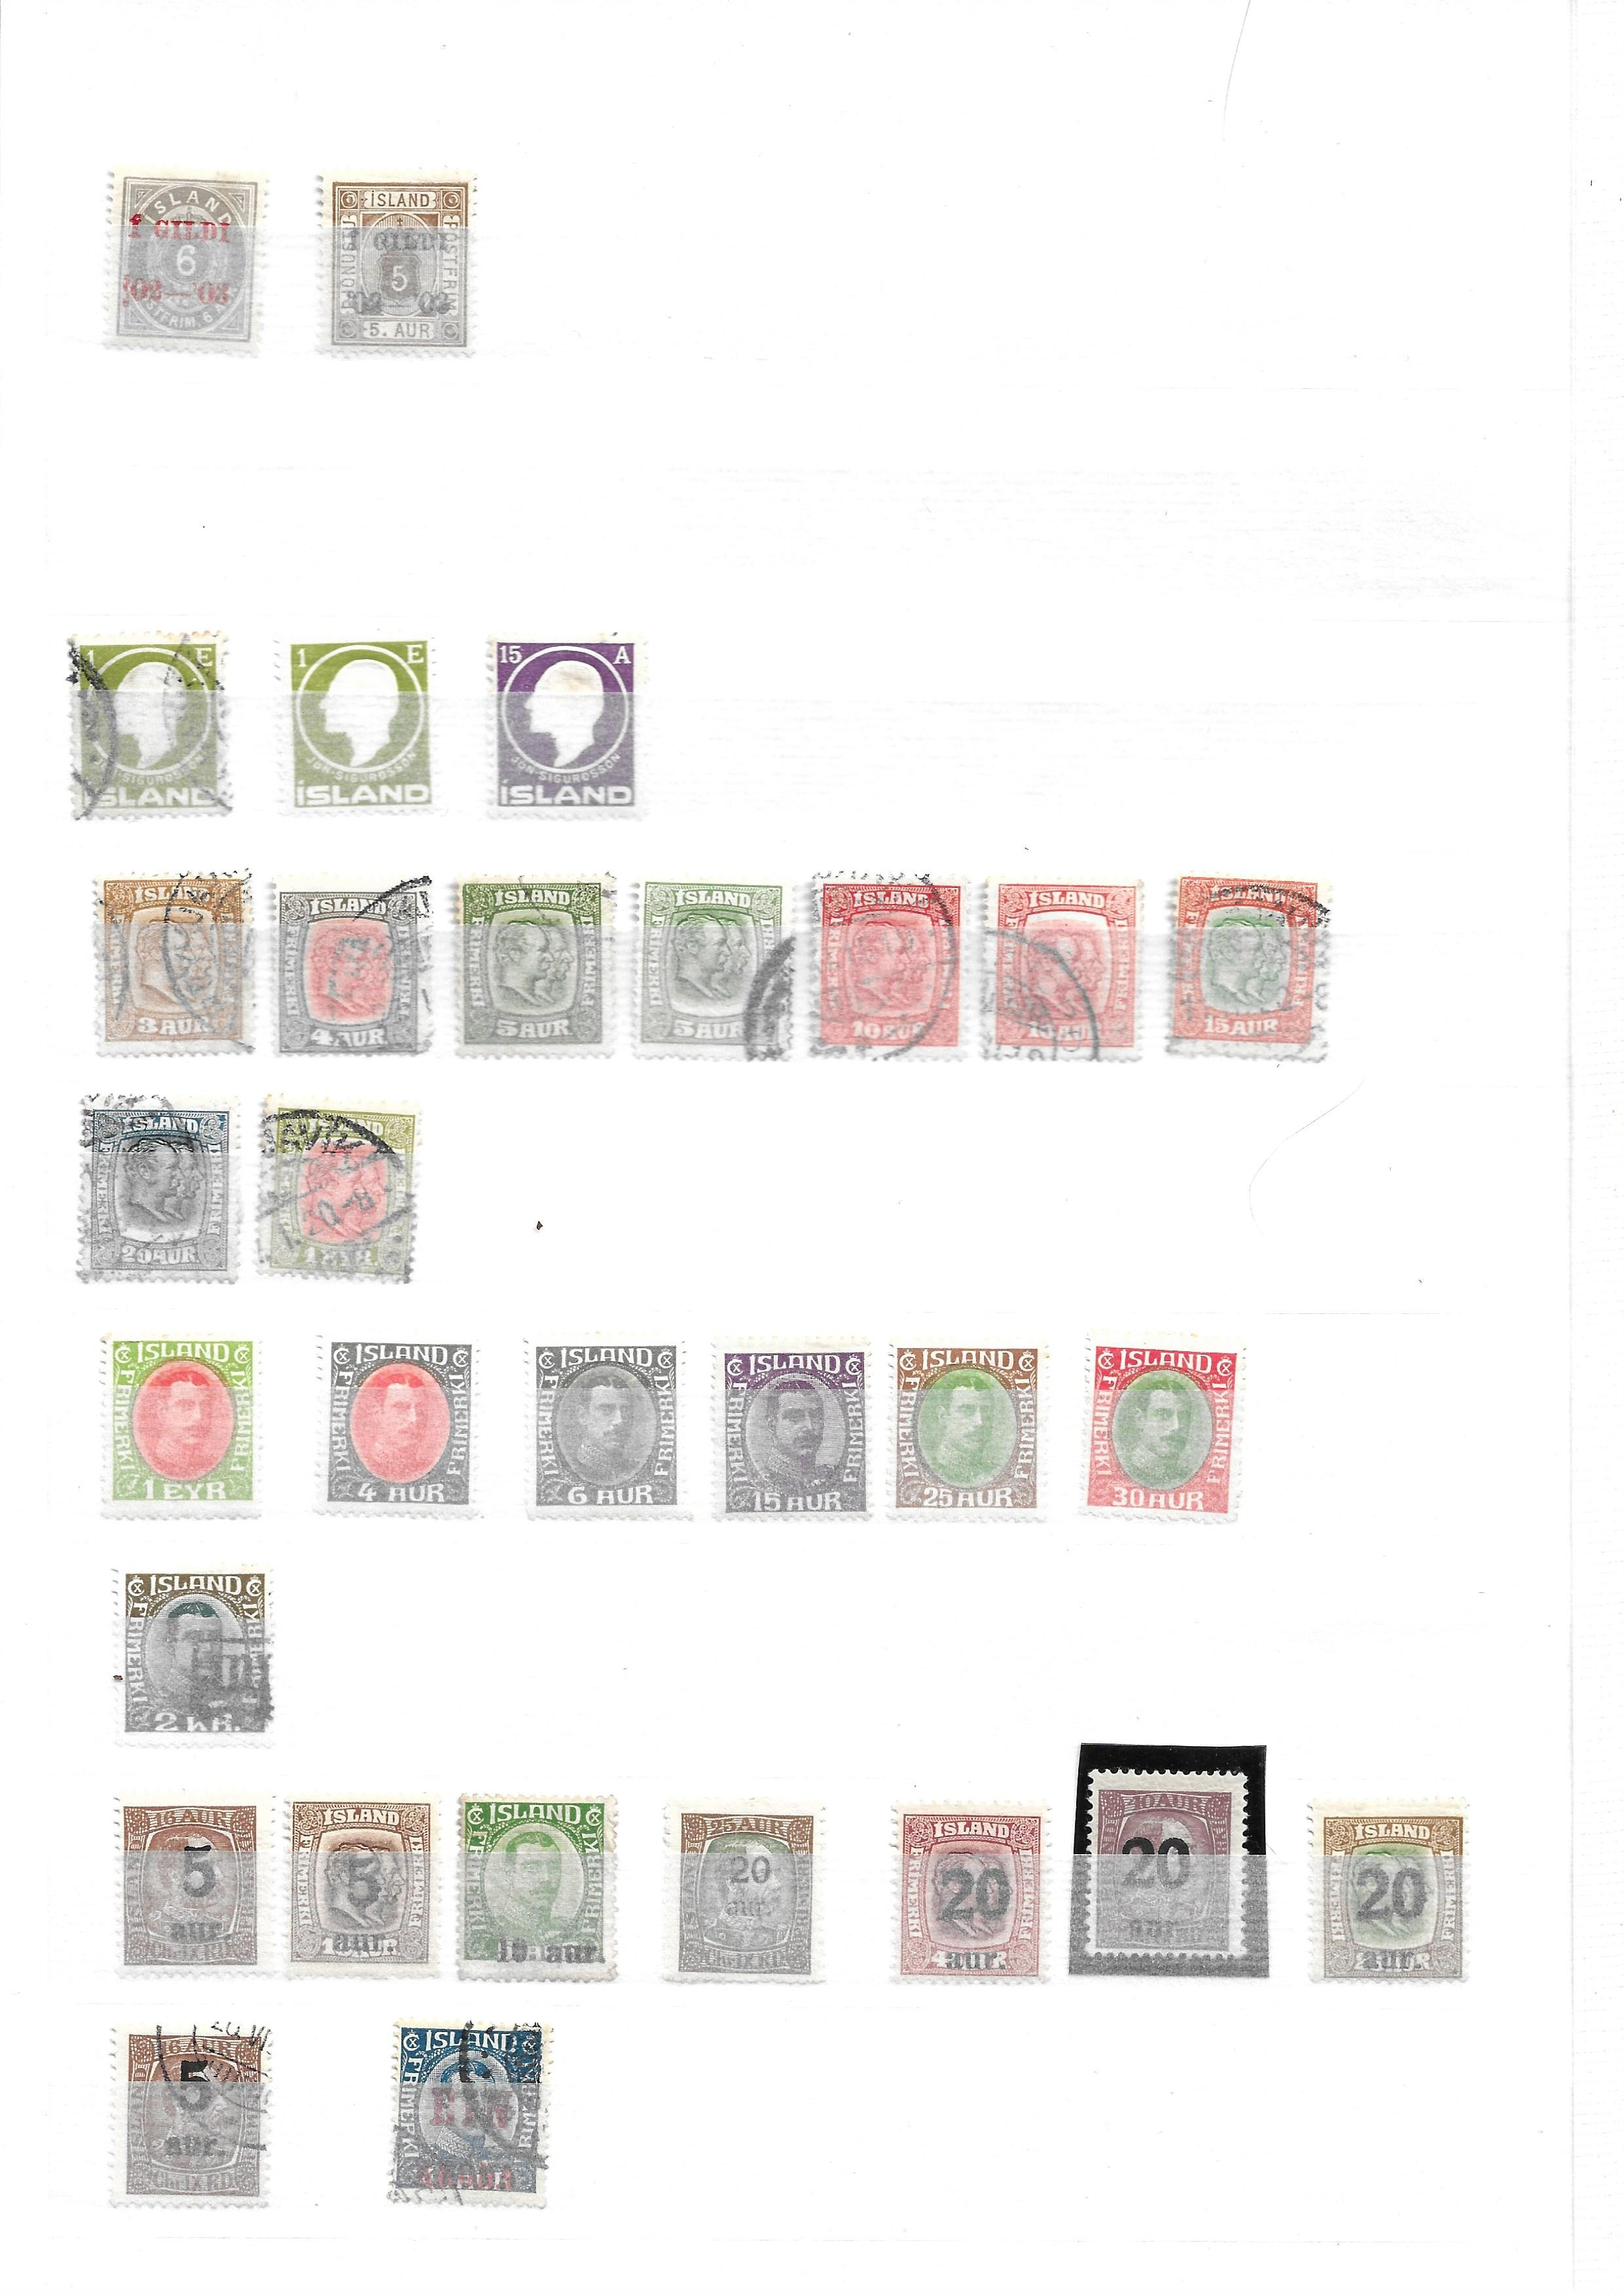 Iceland 1882-1940 unused and used collection on stockcards with sets and better values - Image 3 of 5